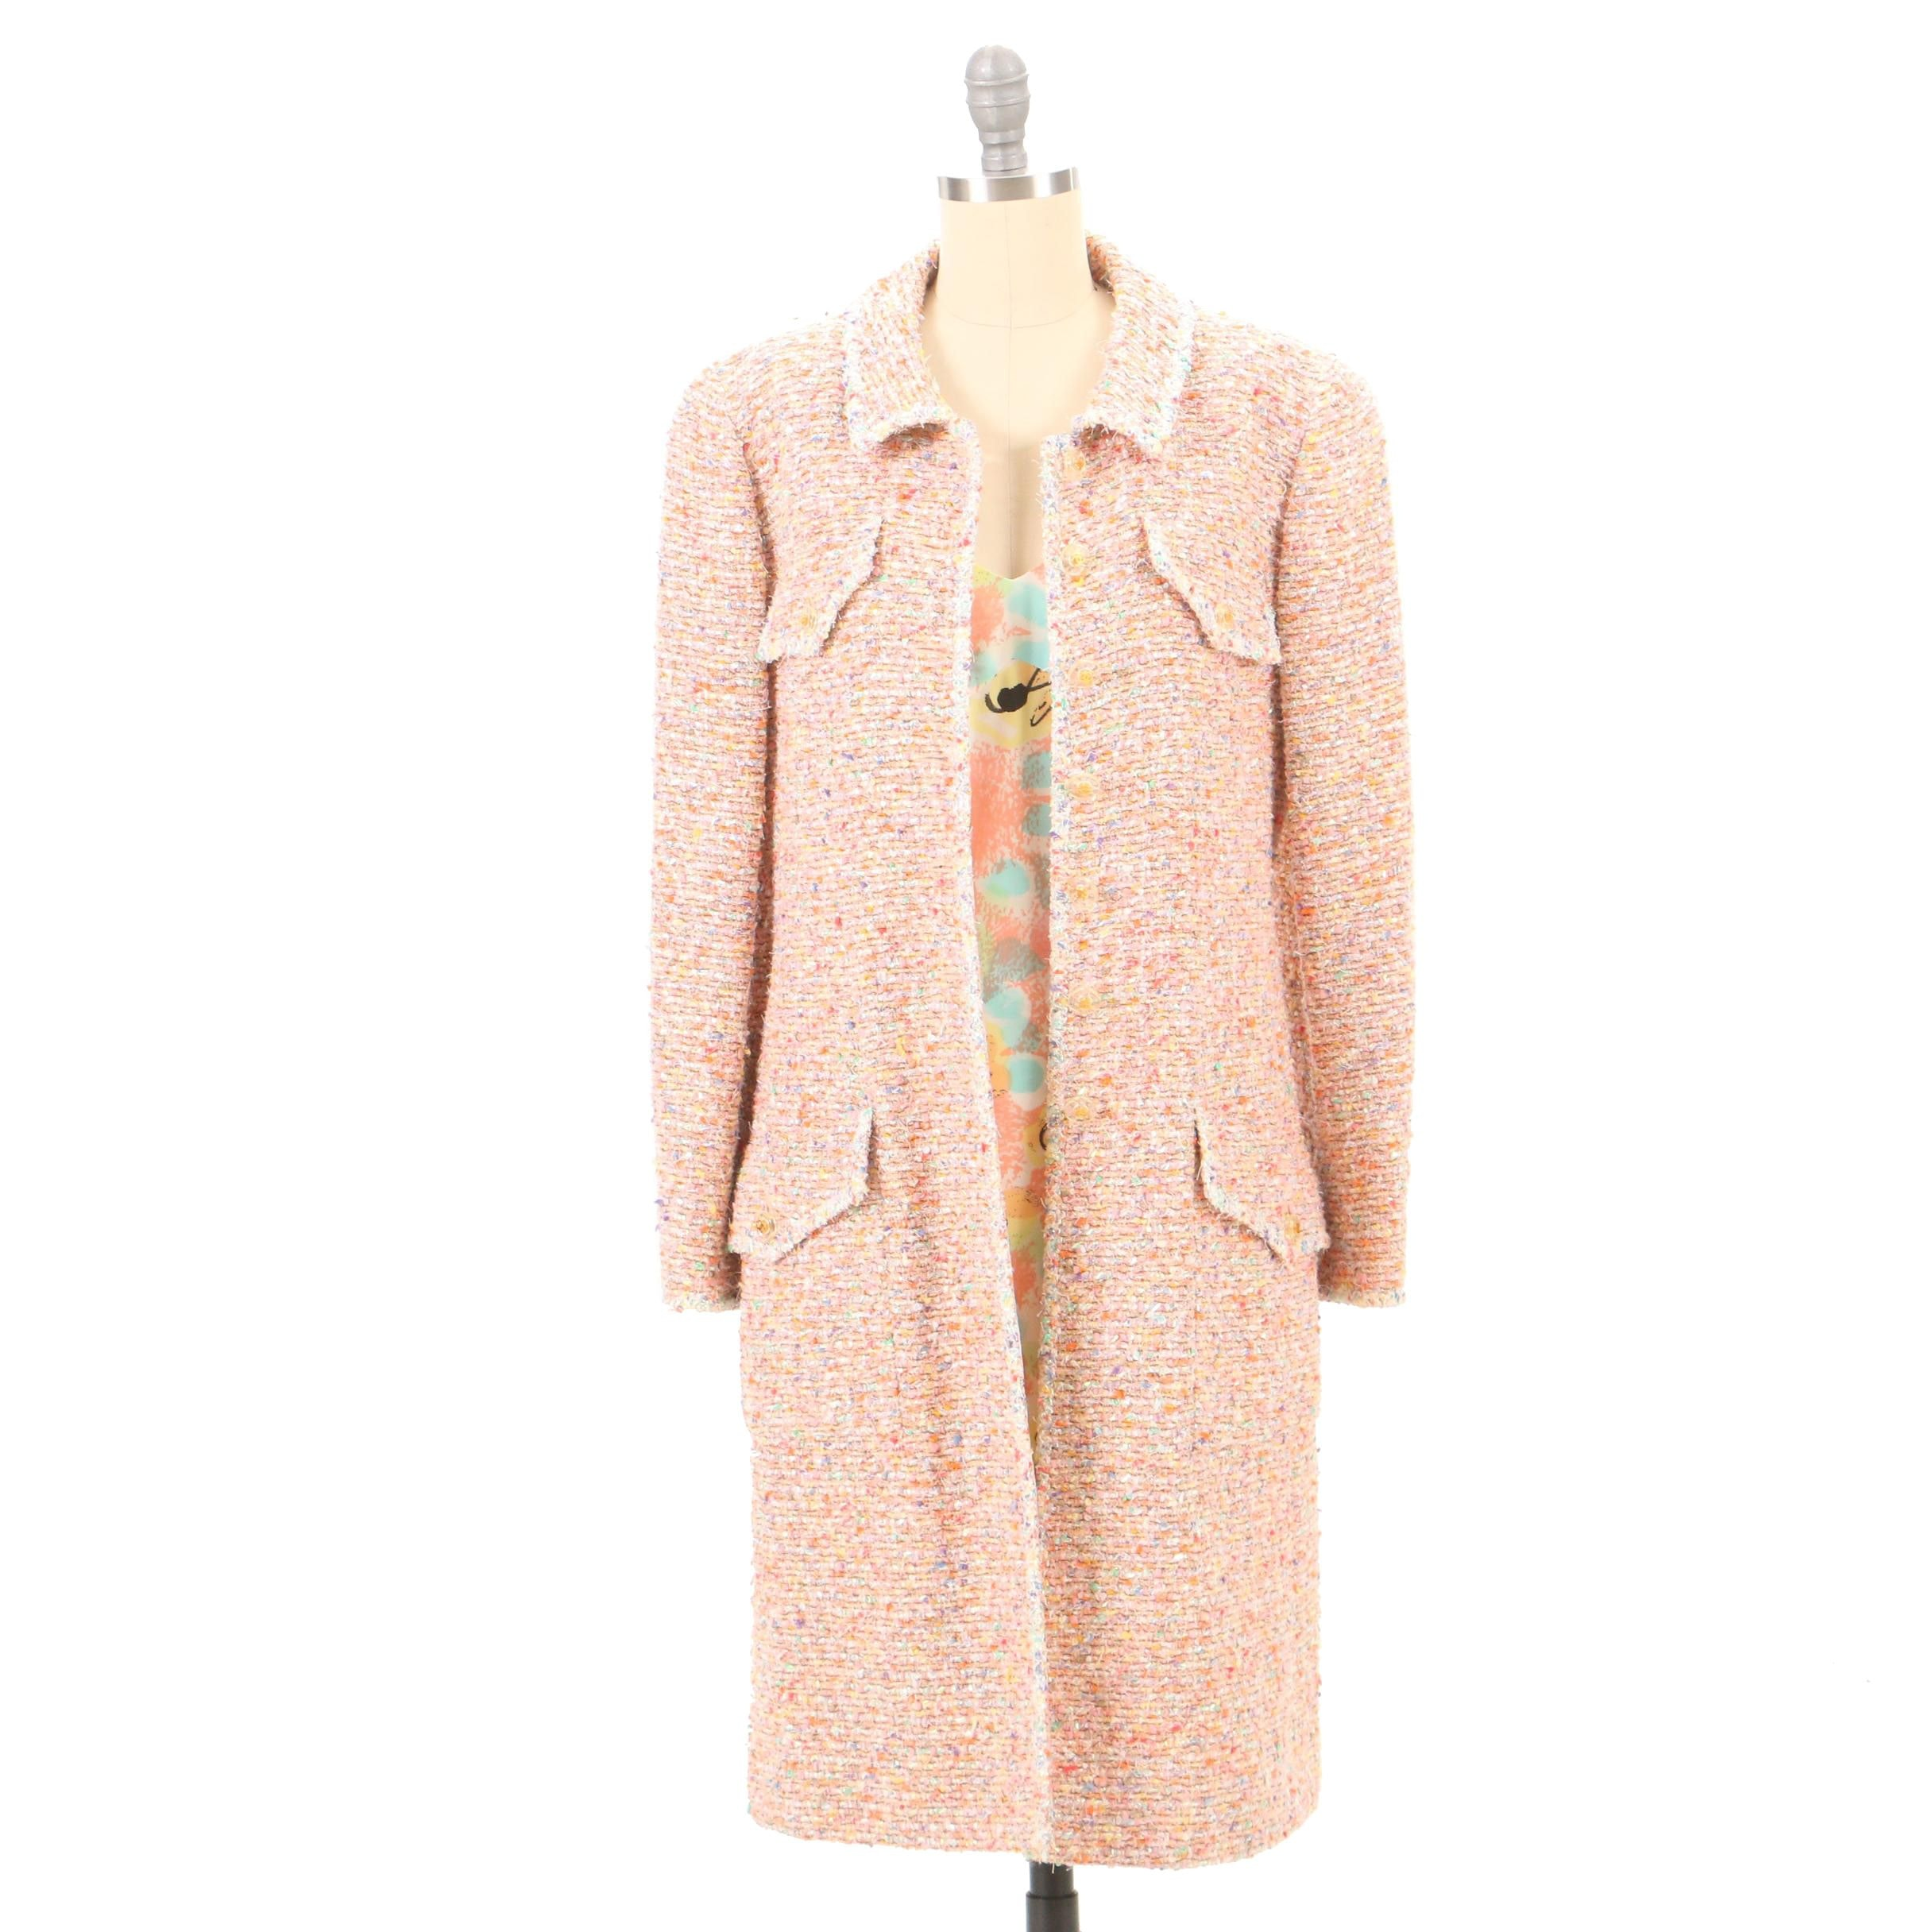 Chanel Spring/Summer 1997 Tweed Coat with Coordinating Floral Print Silk Dress